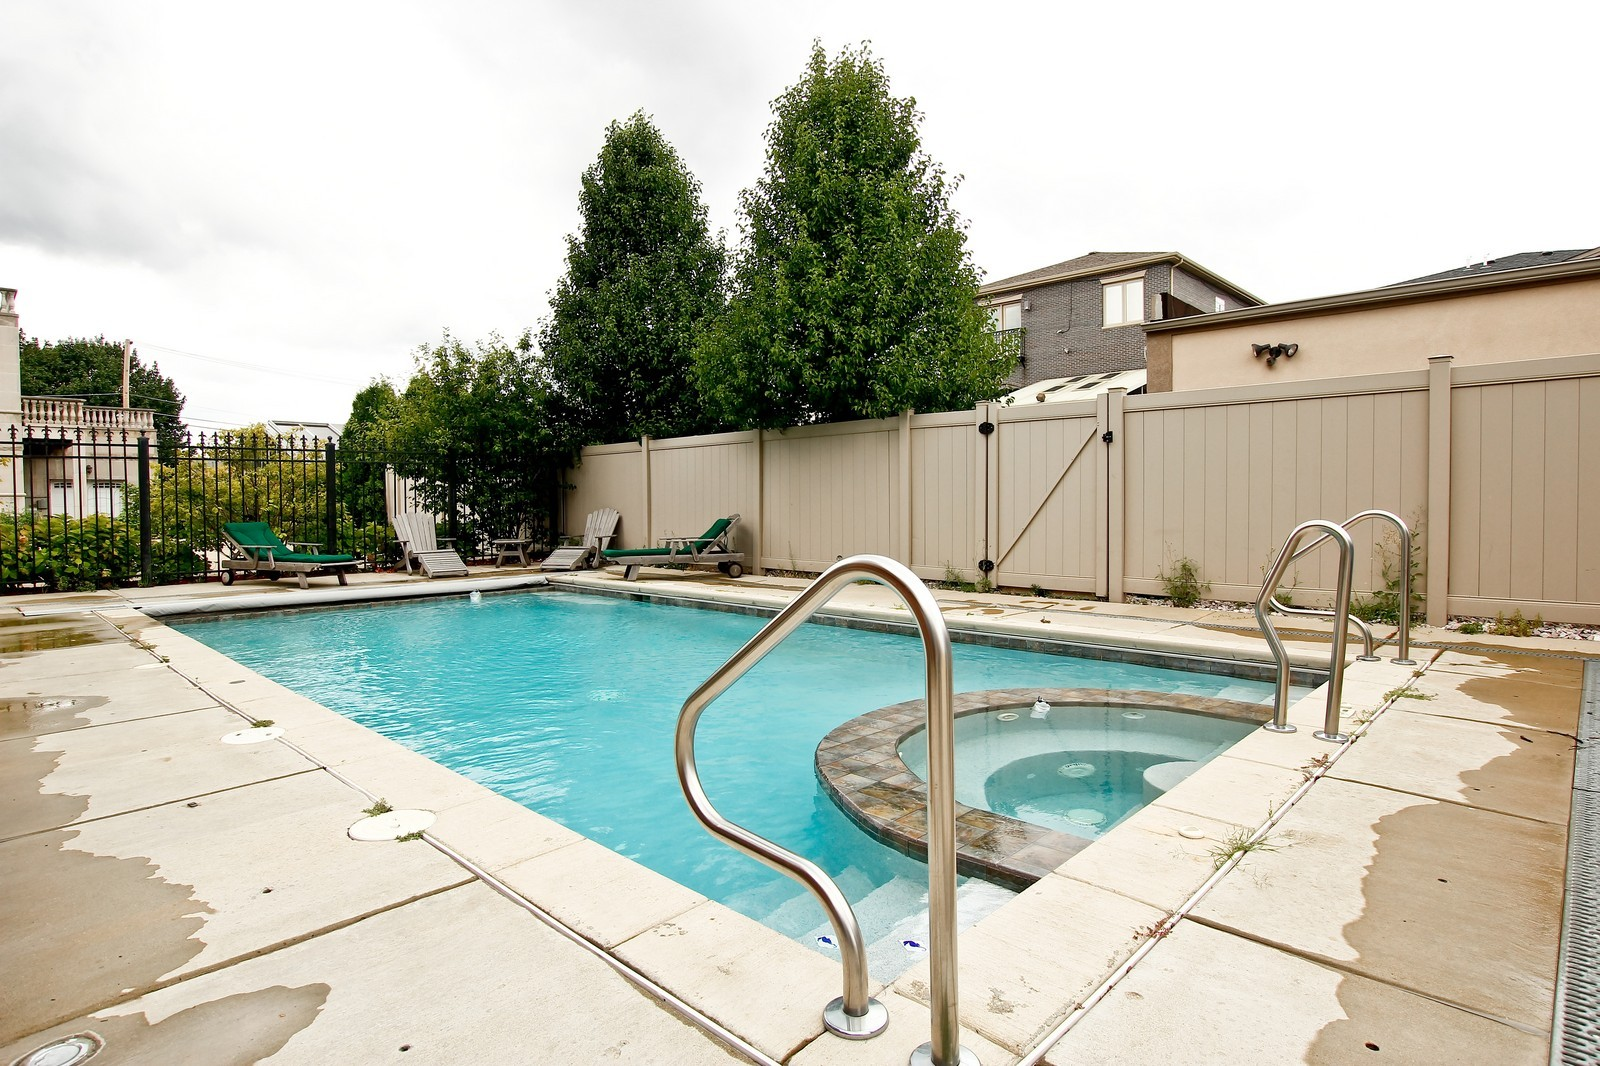 Real Estate Photography - 444 W. 38th Street, Chicago, IL, 60609 - Outdoor Pool